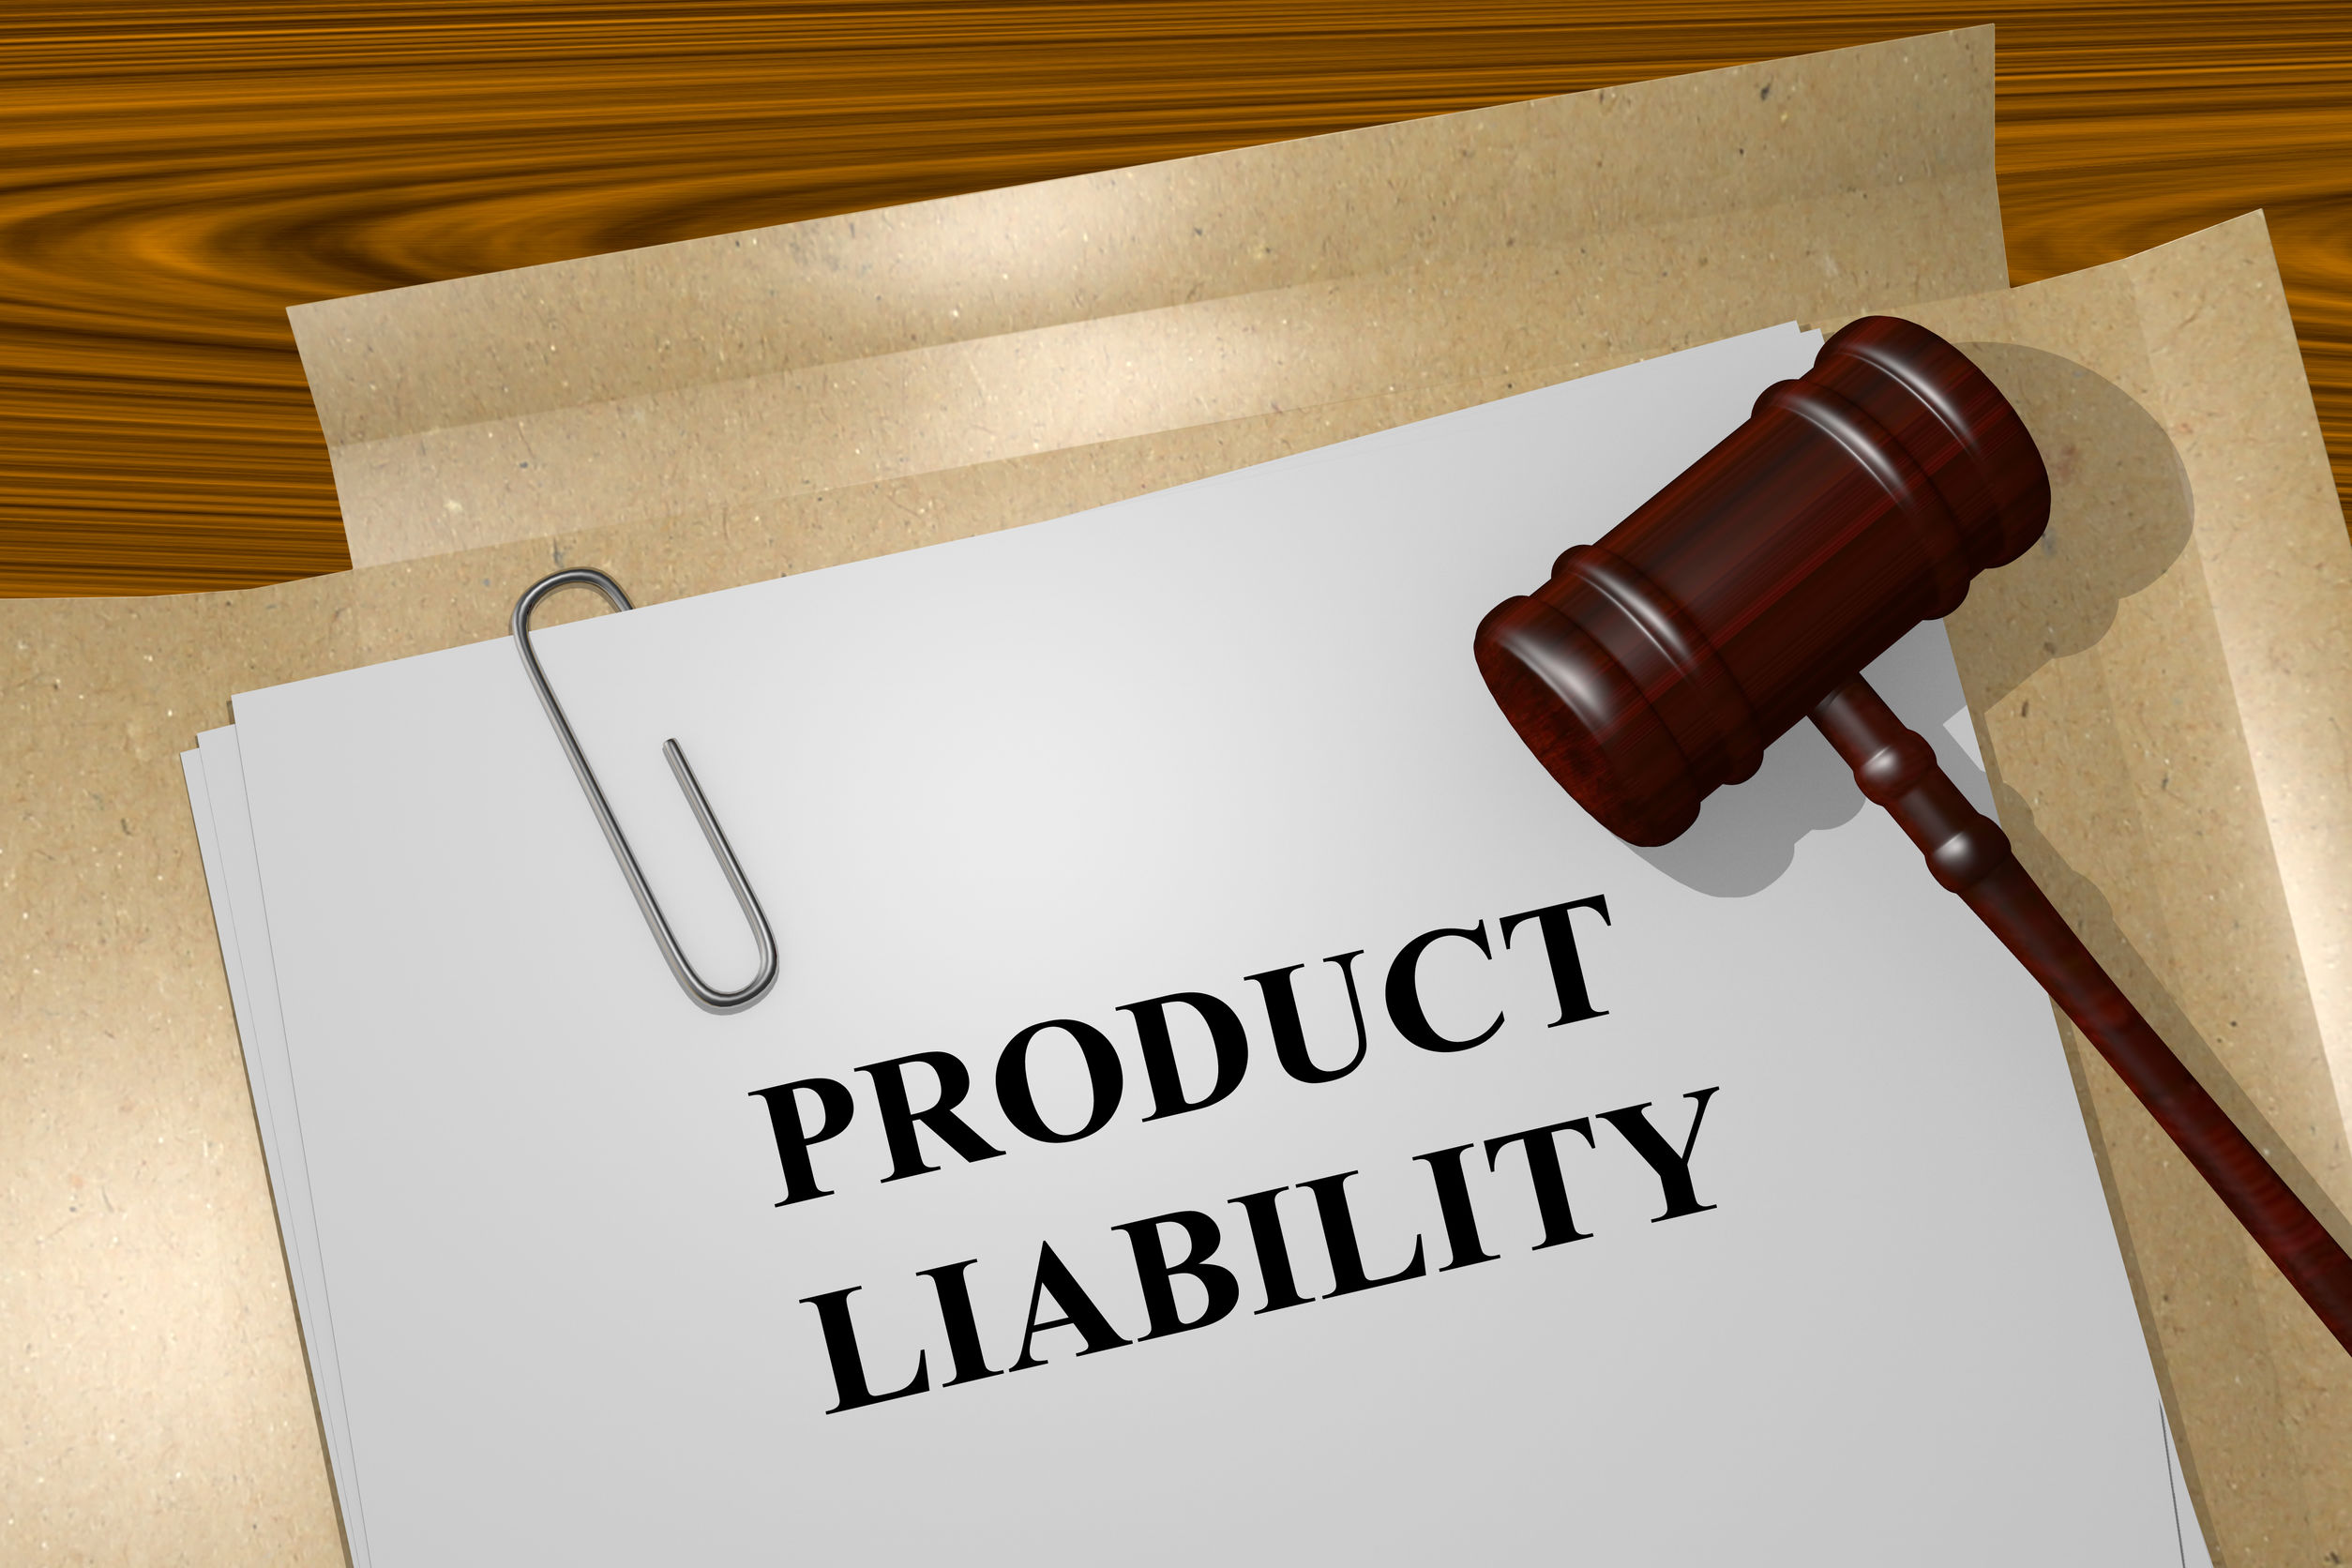 Product liability with a gavel